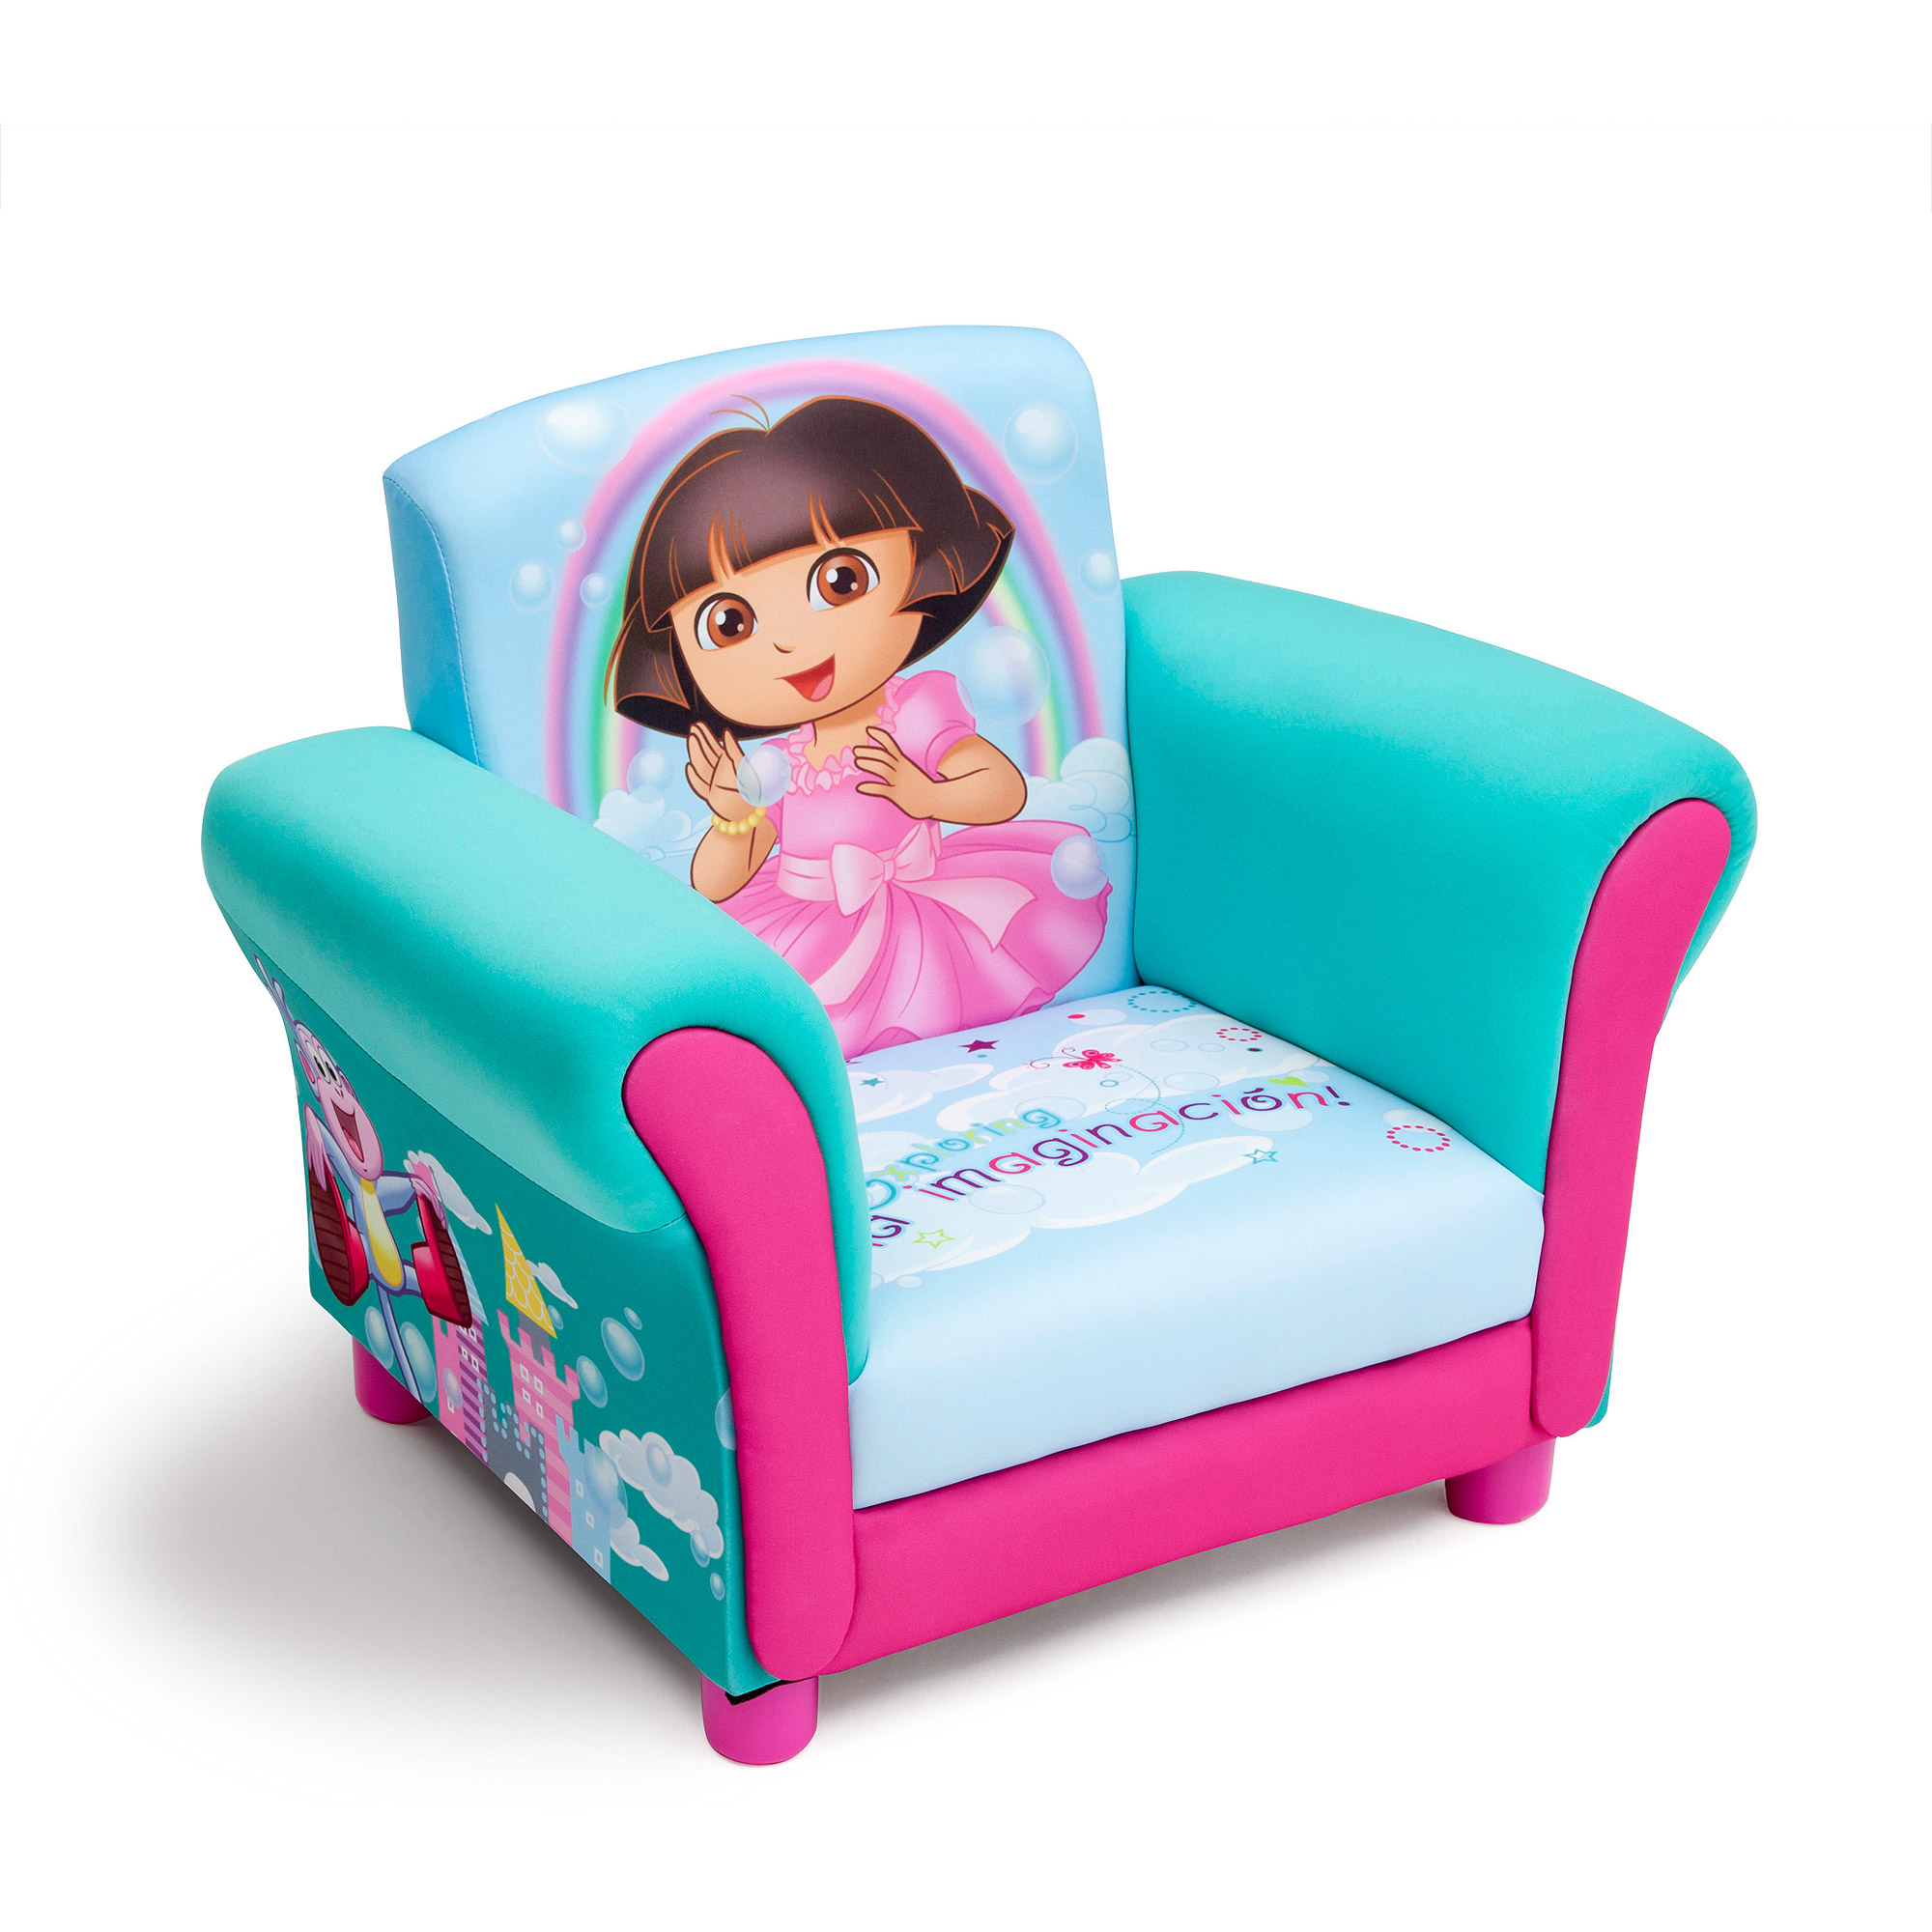 Delta Children's Products Nickelodeon Dora Upholstered Chair by Nickelodeon